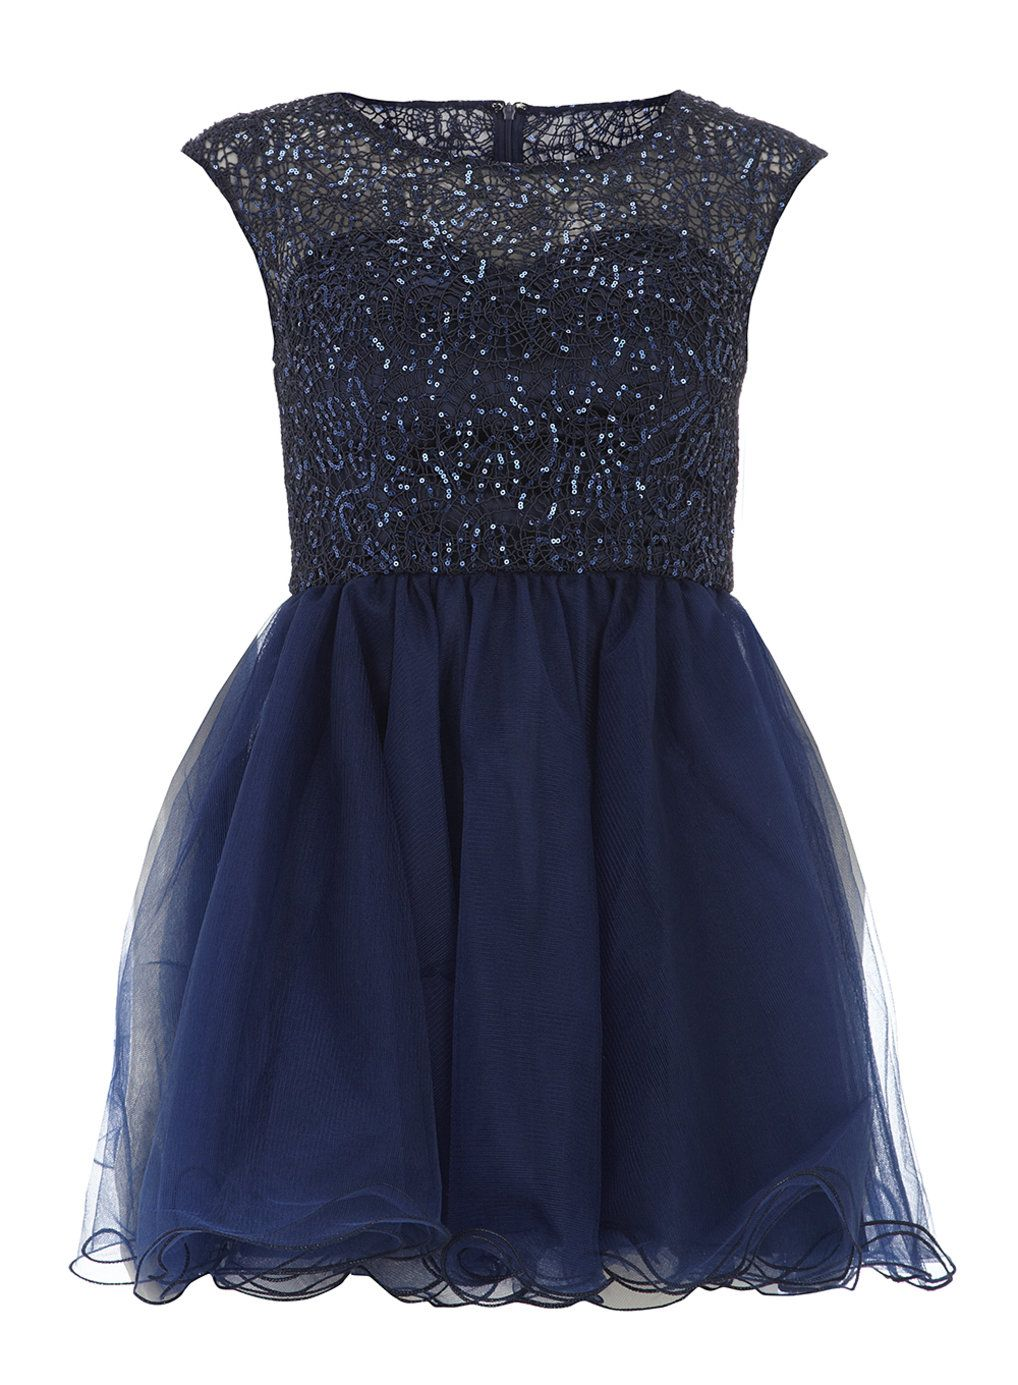 Chi chi lace and sequin prom dress view all dresses dresses